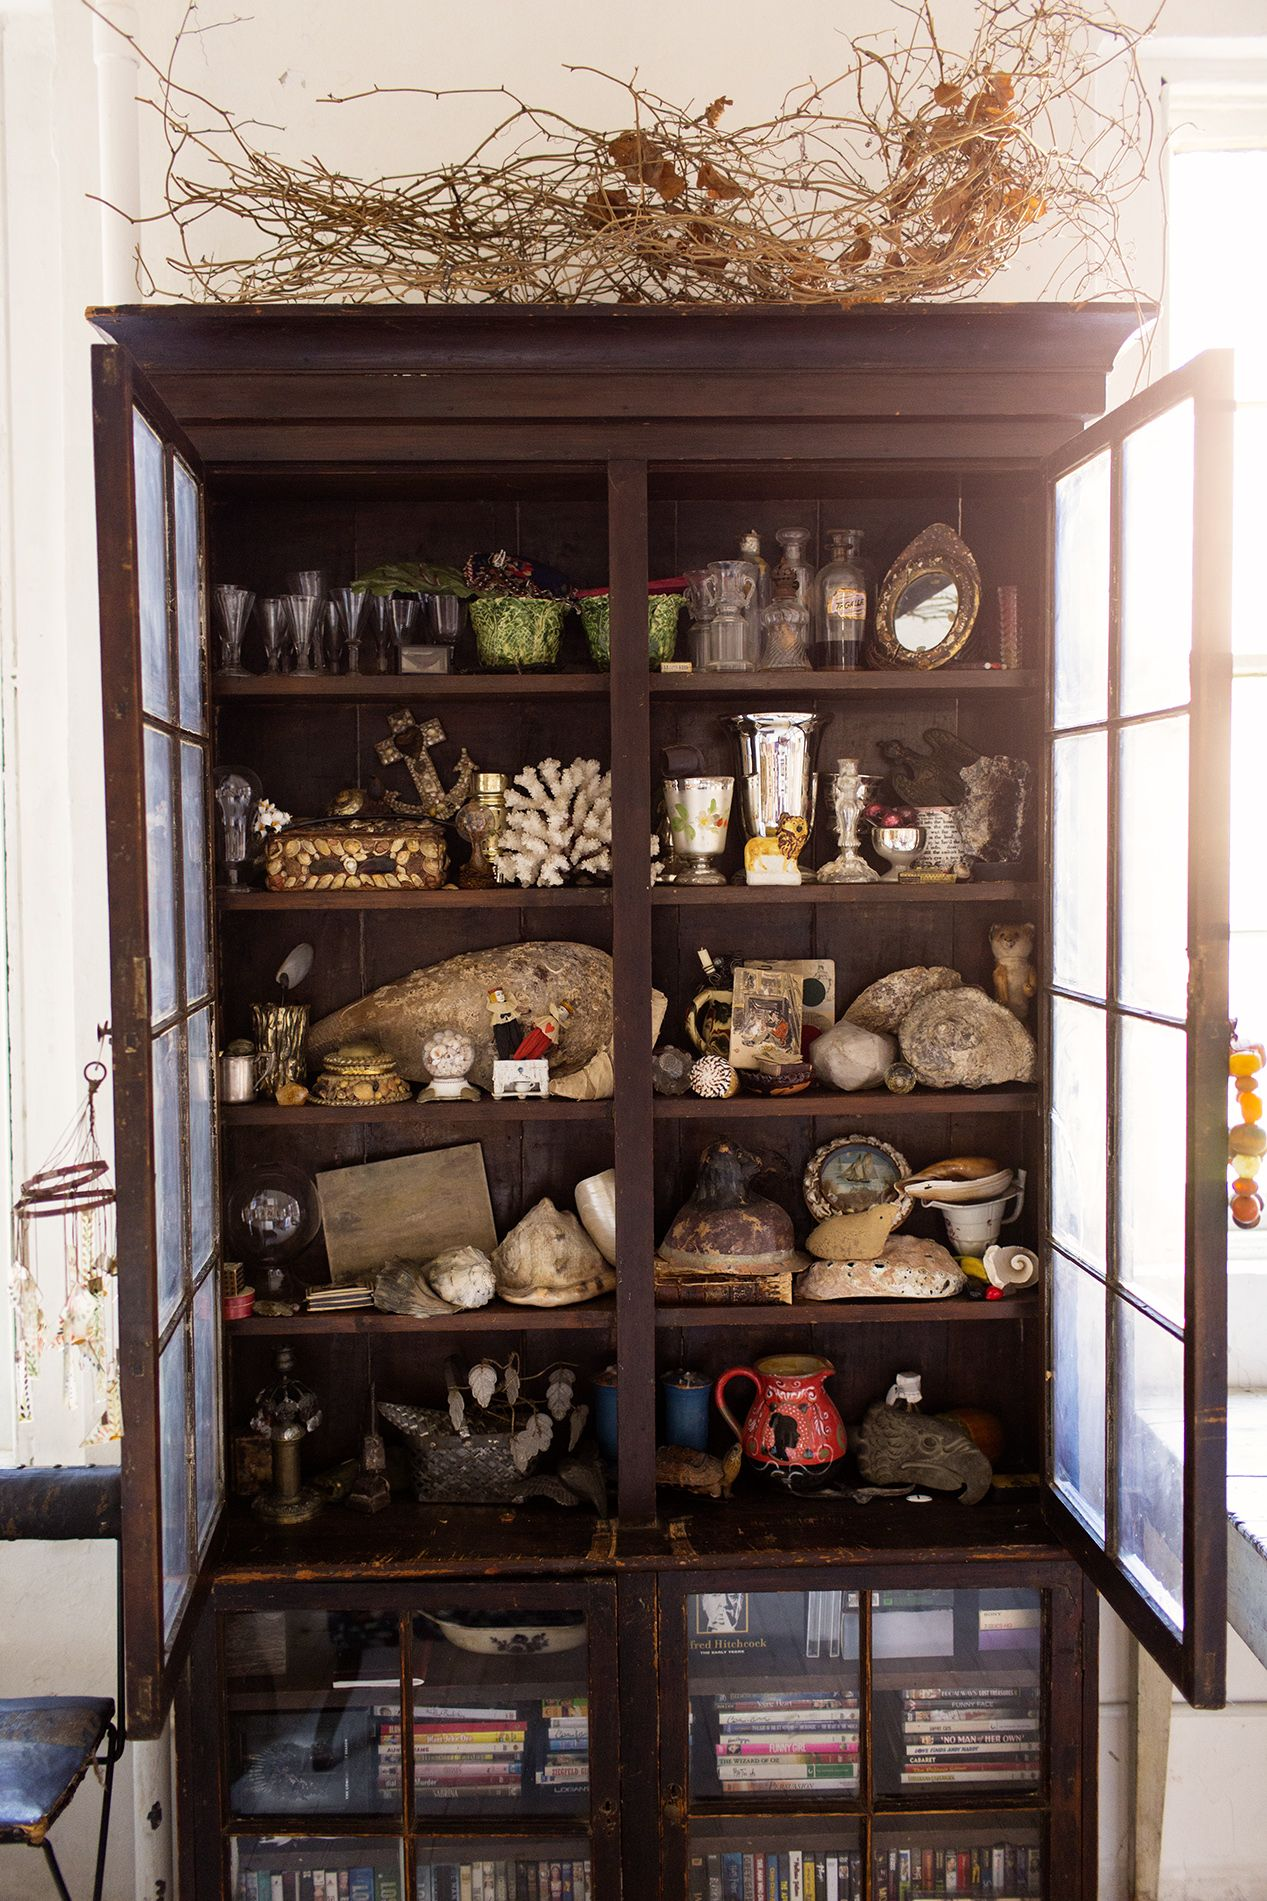 John Derian At Home In New York City The Selby John Derian Home Cabinet Of Curiosities